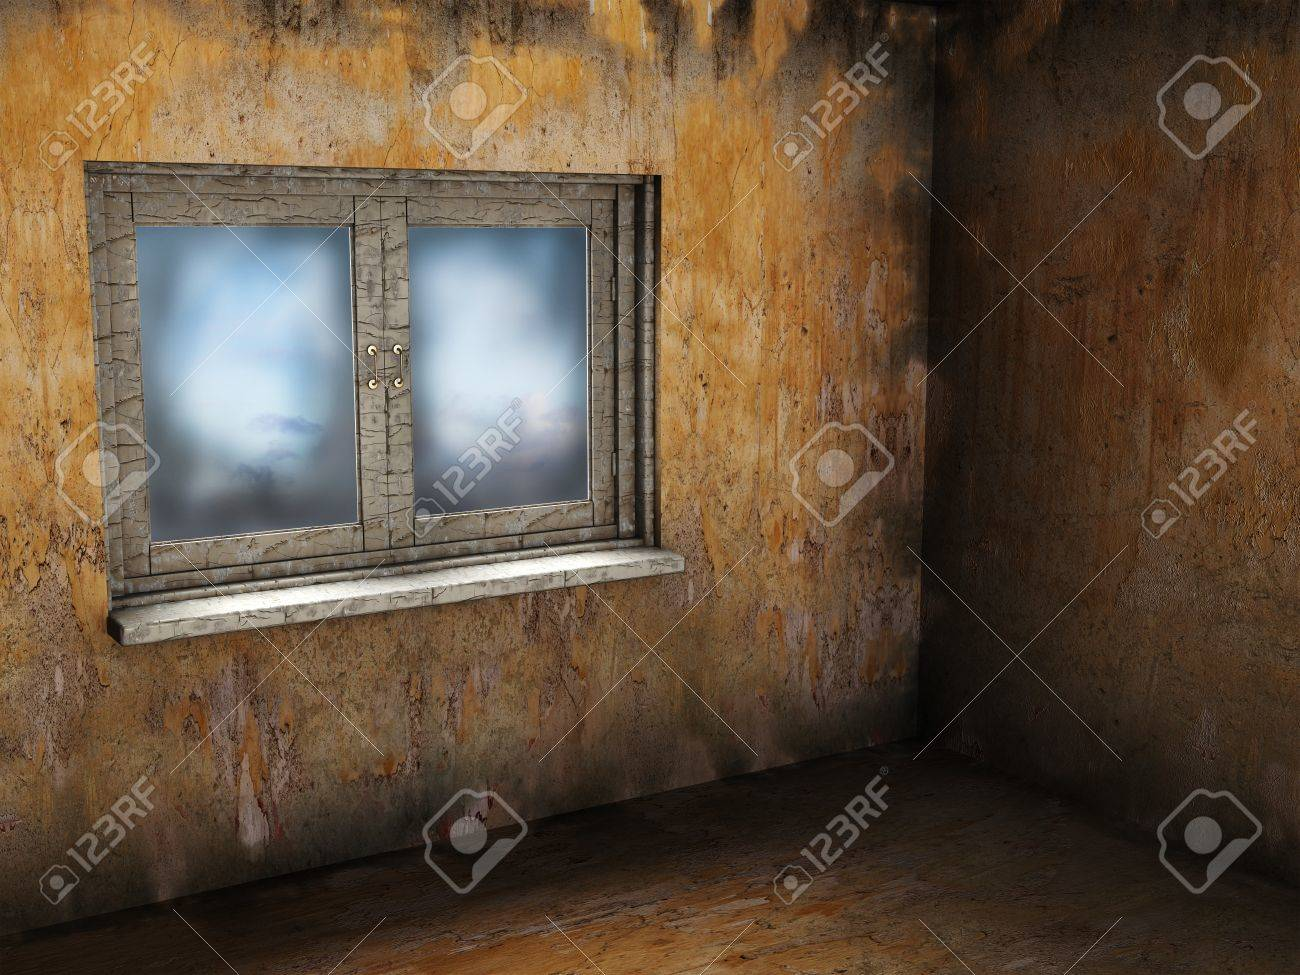 abstract 3d illustration of empty grunge room with window Stock Illustration - 9187224